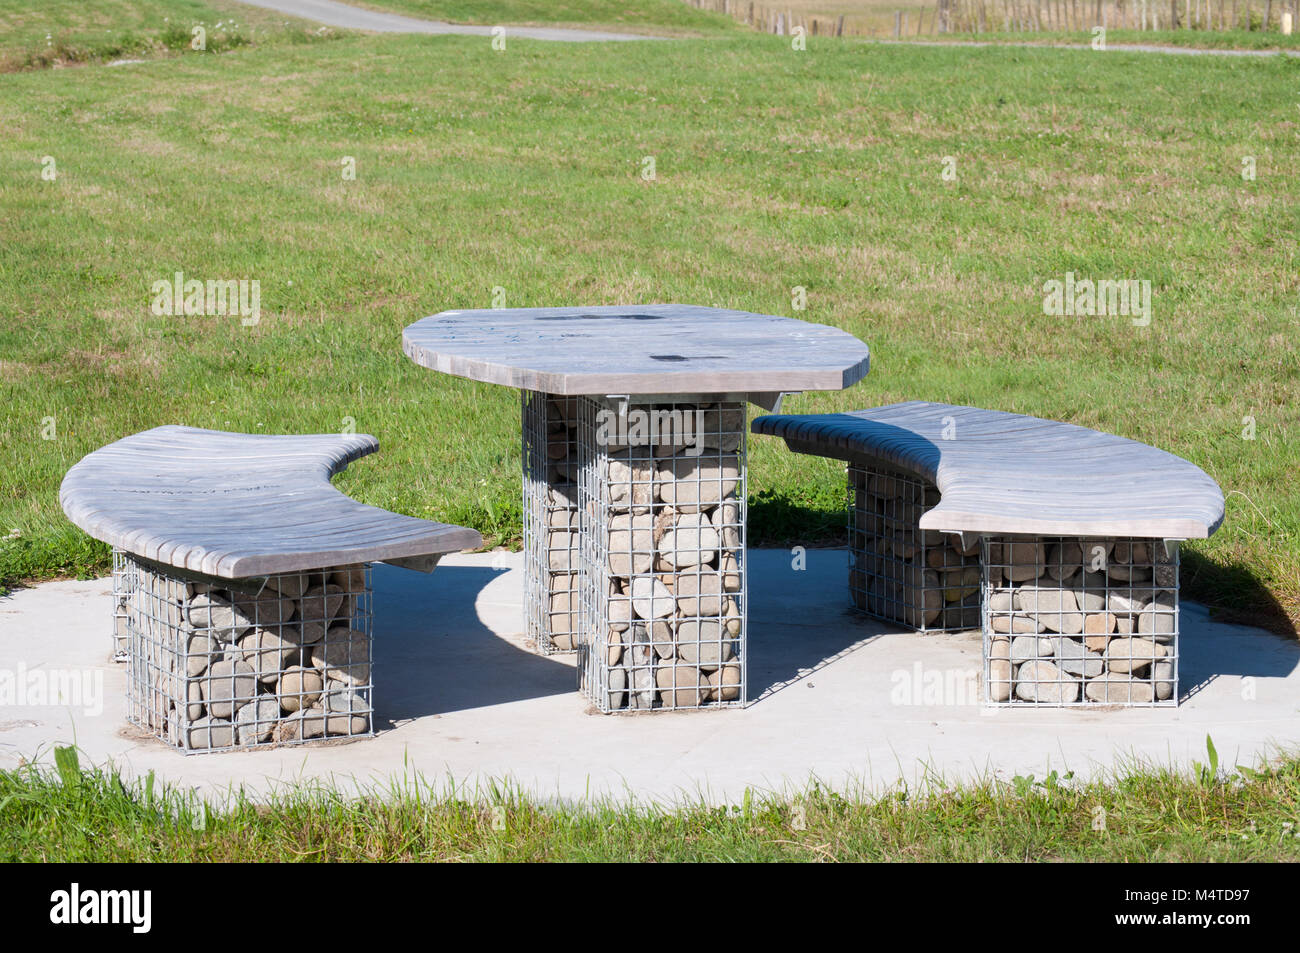 Stone Picnic Table And Seating Stock Photo Alamy - Stone picnic table